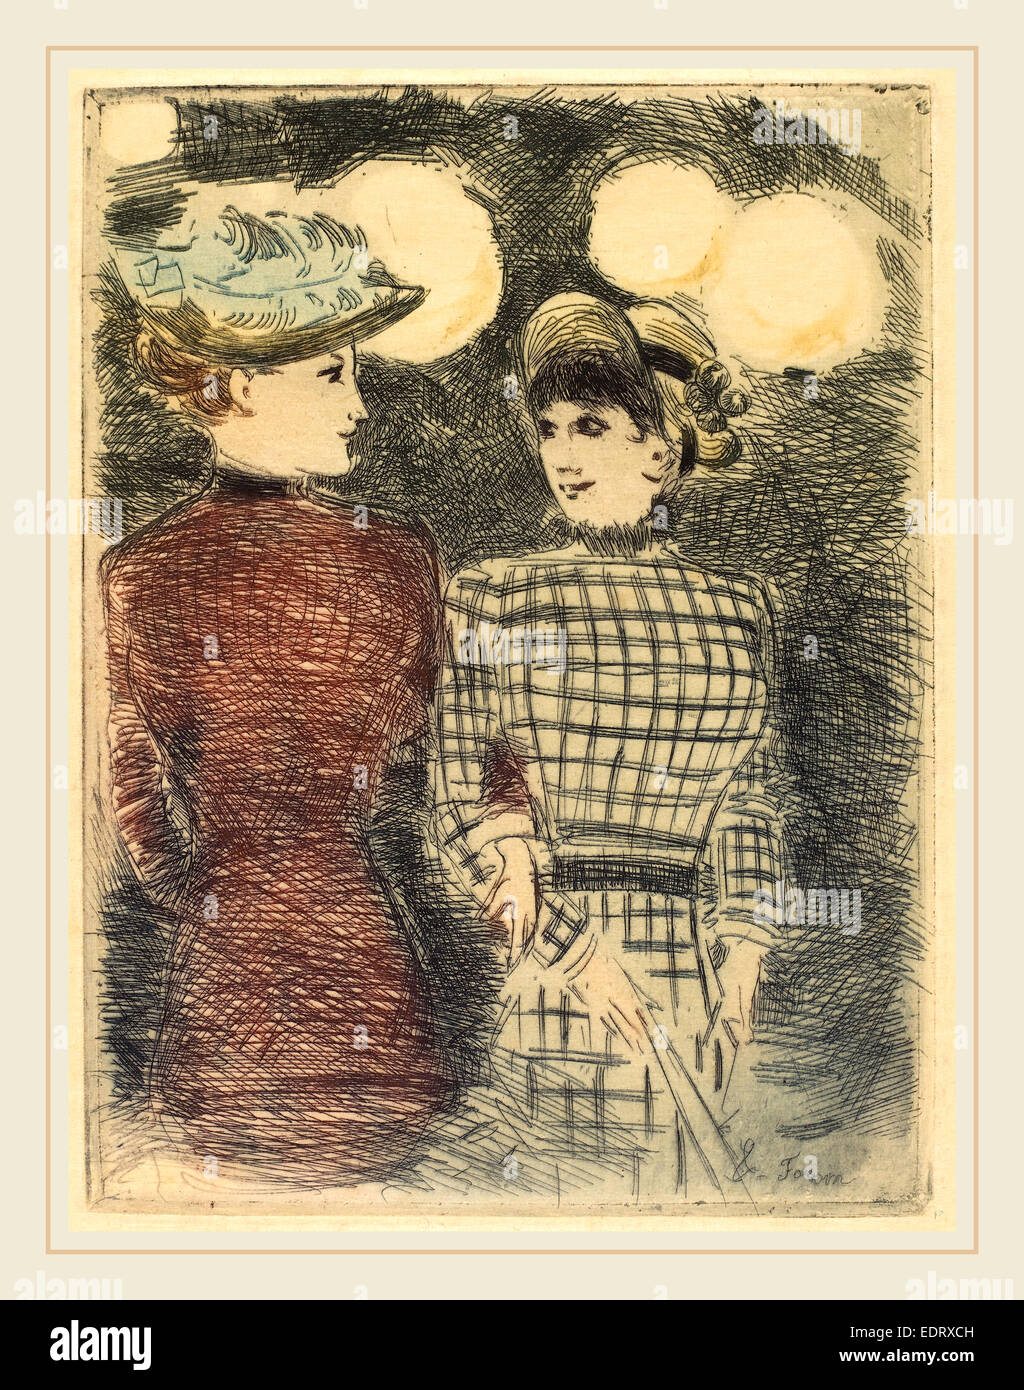 Jean-Louis Forain (French, 1852-1931), To Bullier's, c. 1876, color etching - Stock Image